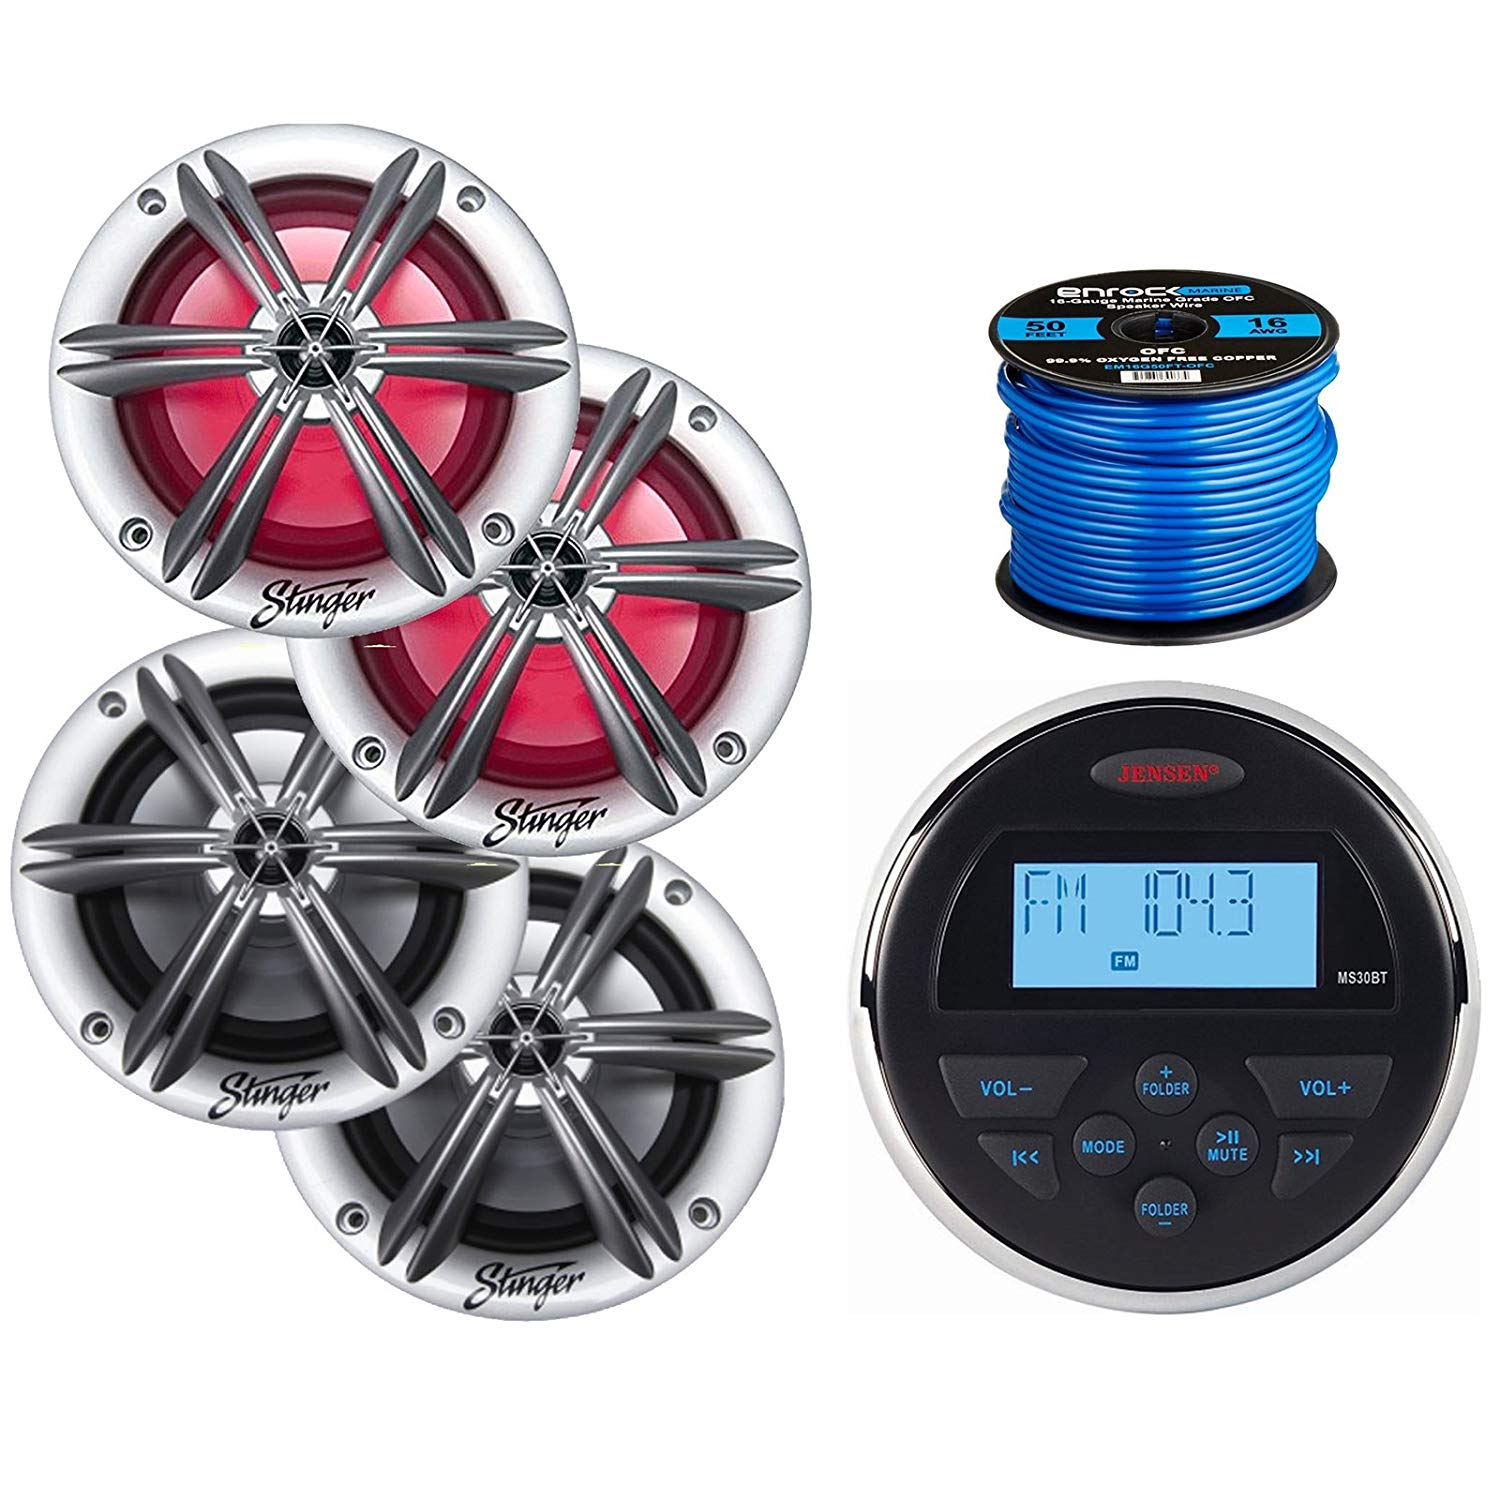 """Jensen Mechless Compact Waterproof Stereo w/Bluetooth, 2 x Stinger PowerSports 6.5"""" Marine Coaxial Speakers w/RGB Lighting (Silver), 2 x Stinger 6.5"""" Coaxial Speakers (Silver), 50 Ft Speaker Wire"""